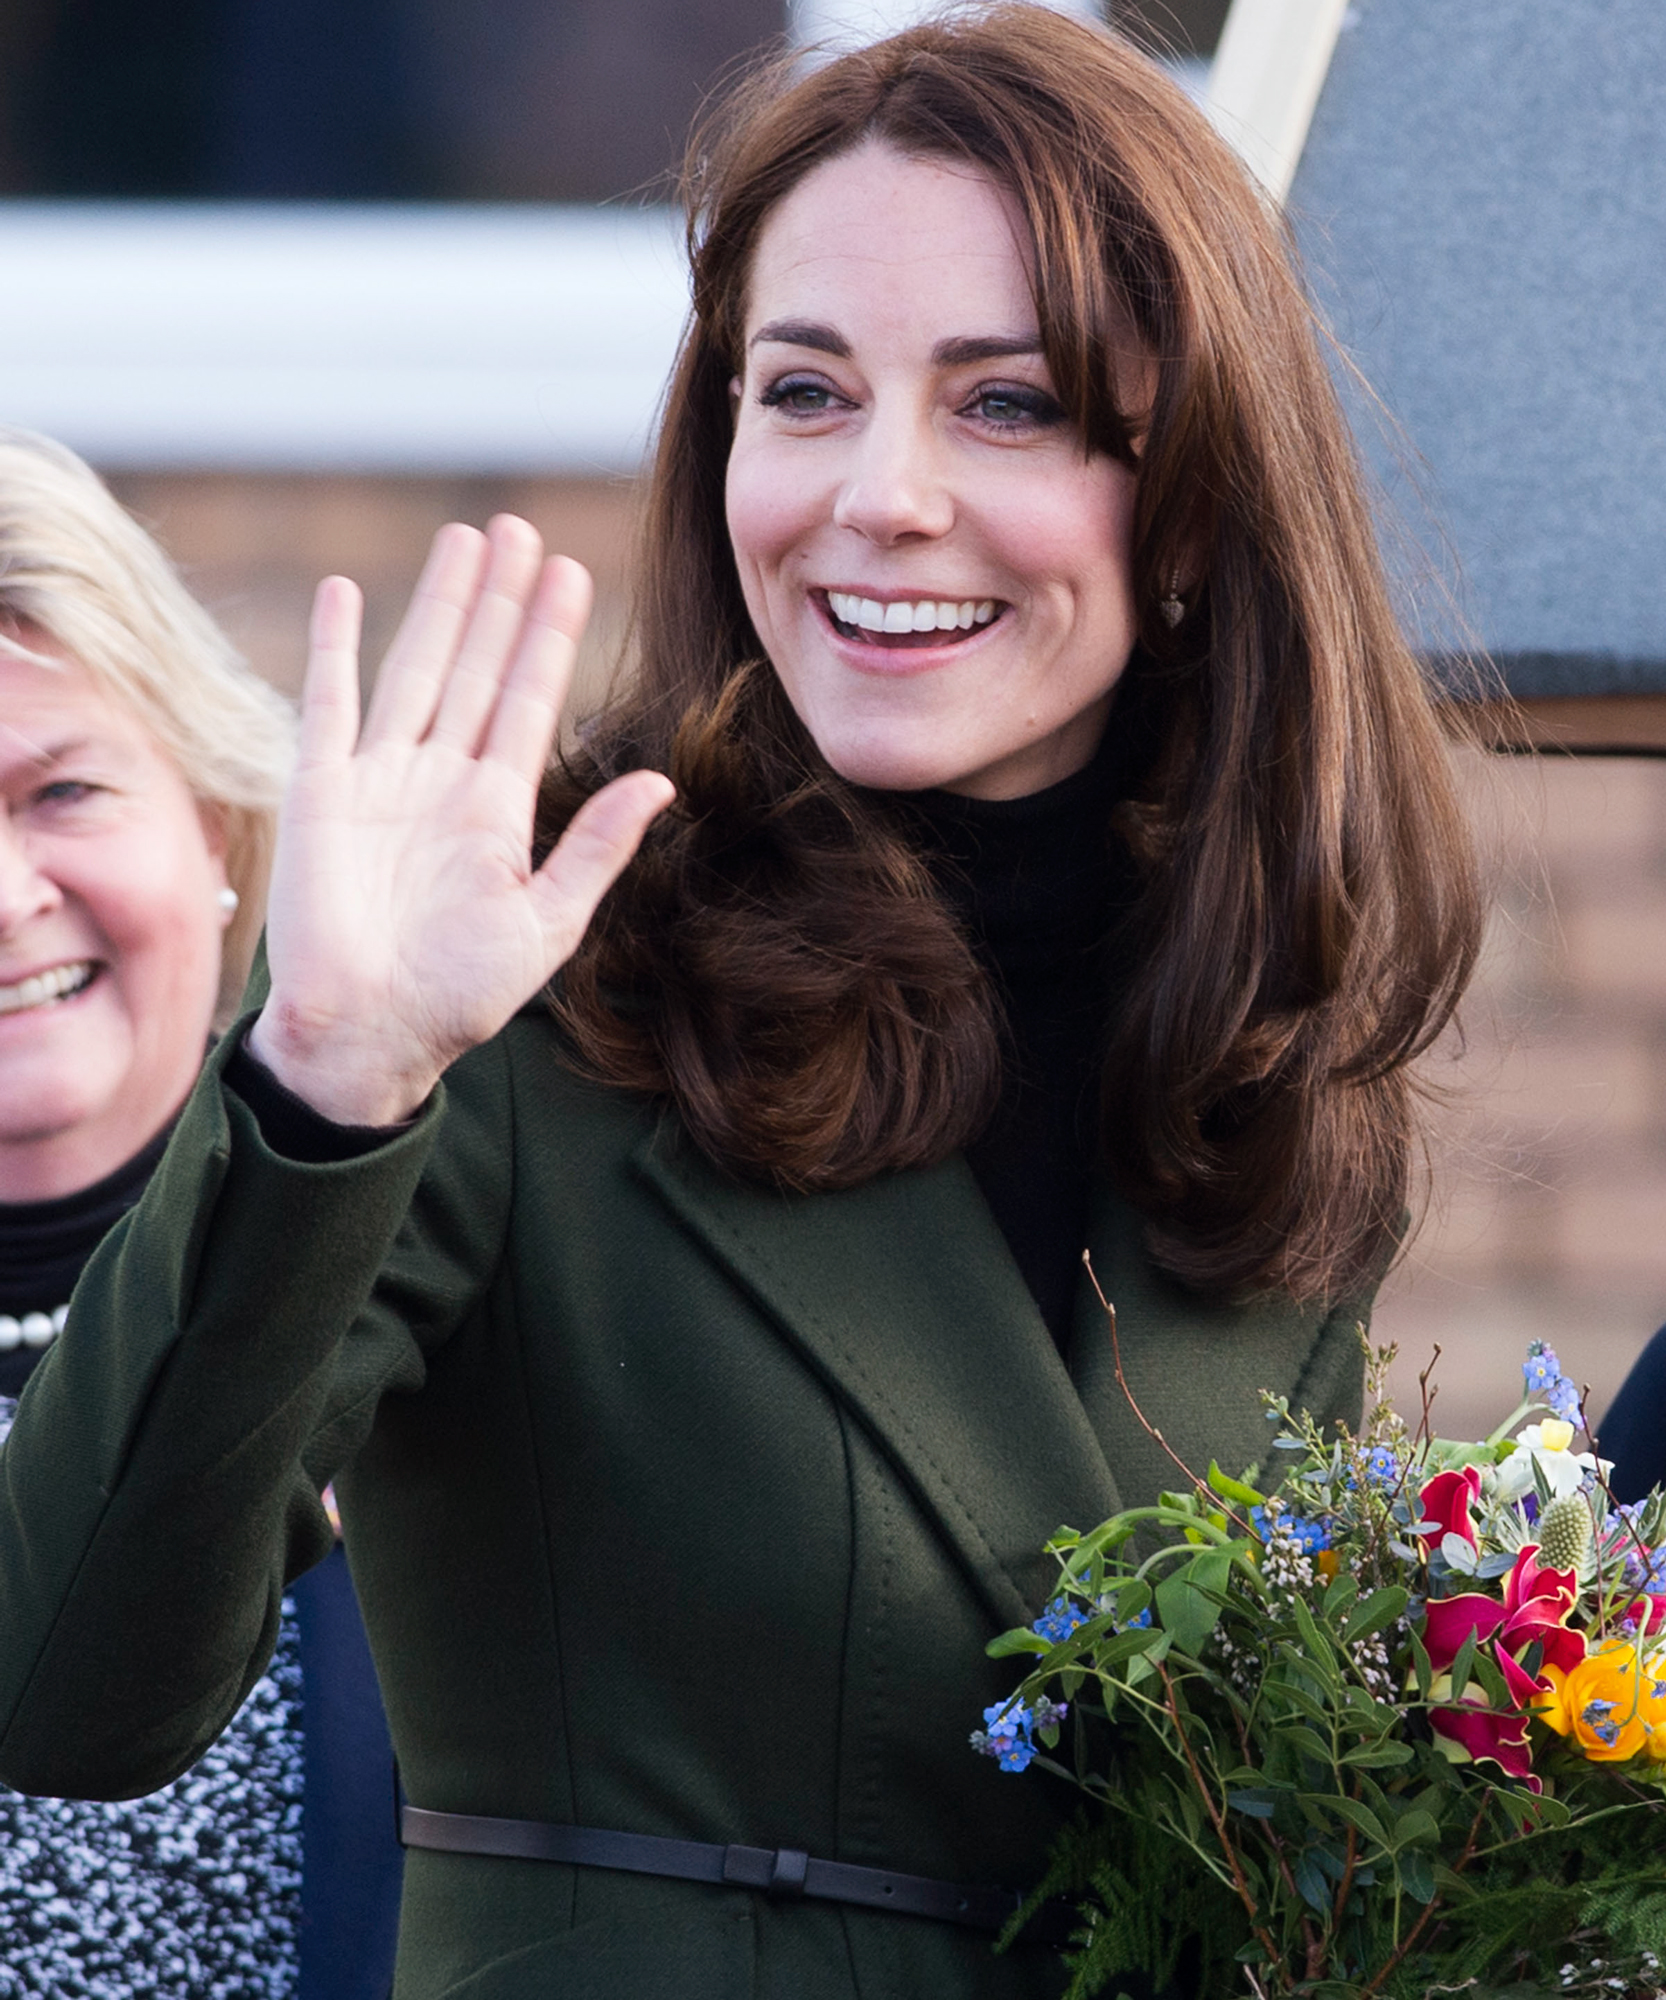 Catherine, Duchess of Cambridge, Royal Patron of Place2Be, visits St Catherine's Primary School on February 24, 2016 in Edinburgh, Scotland.